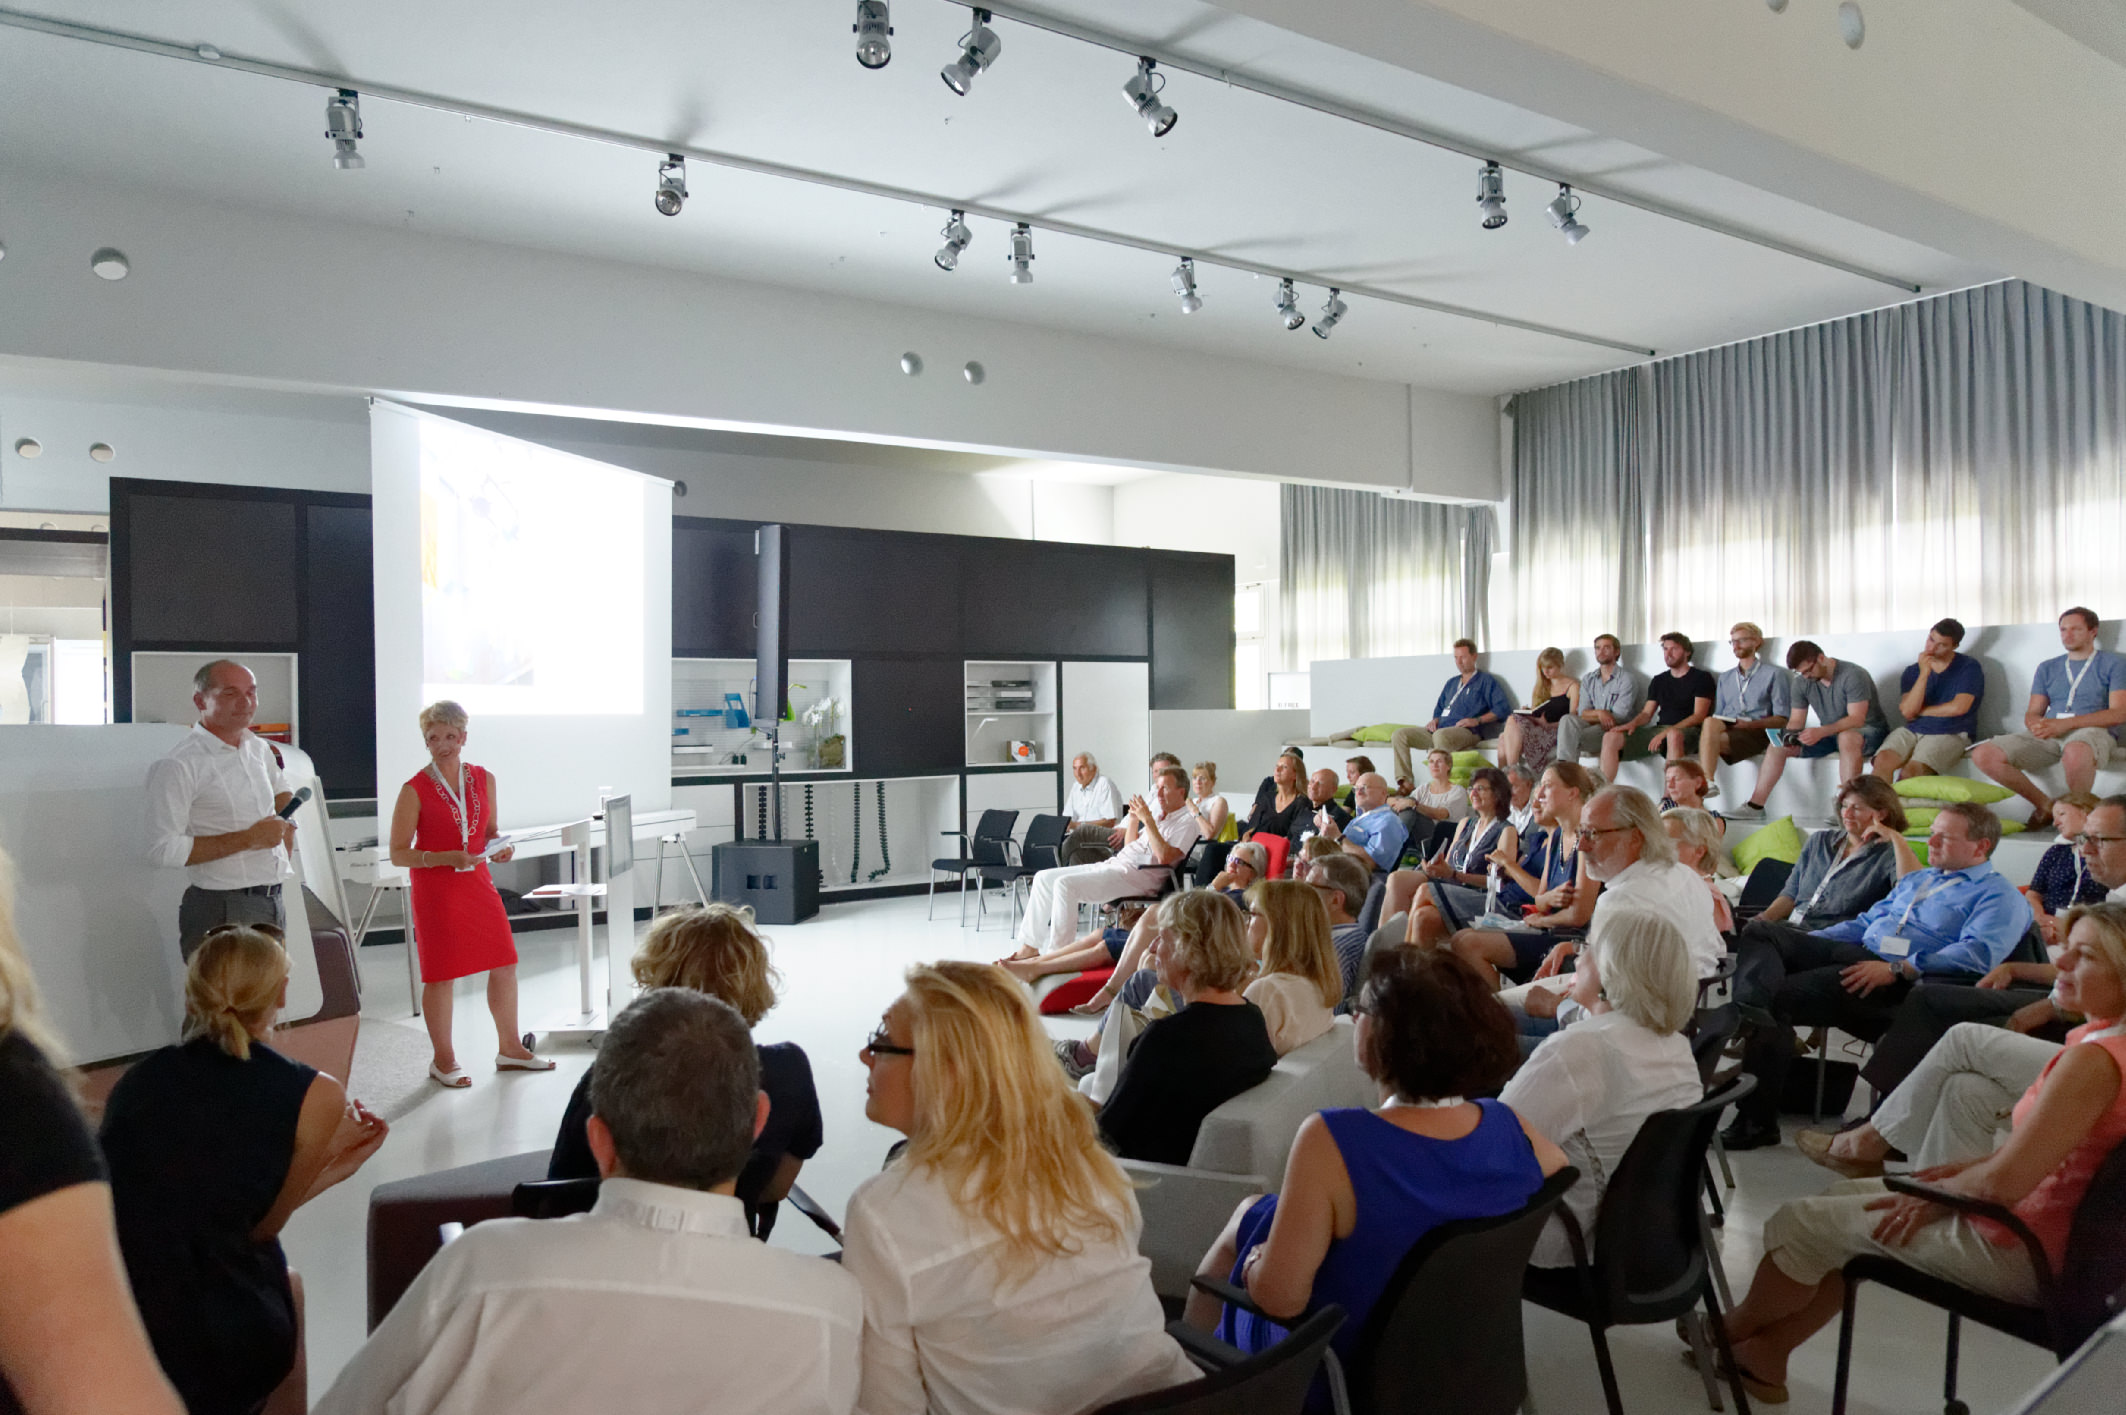 Bdia handbuchausstellung best of 2015 16 plus vortr ge am 17 juli 2015 bei steelcase in - Innenarchitektur rosenheim ...